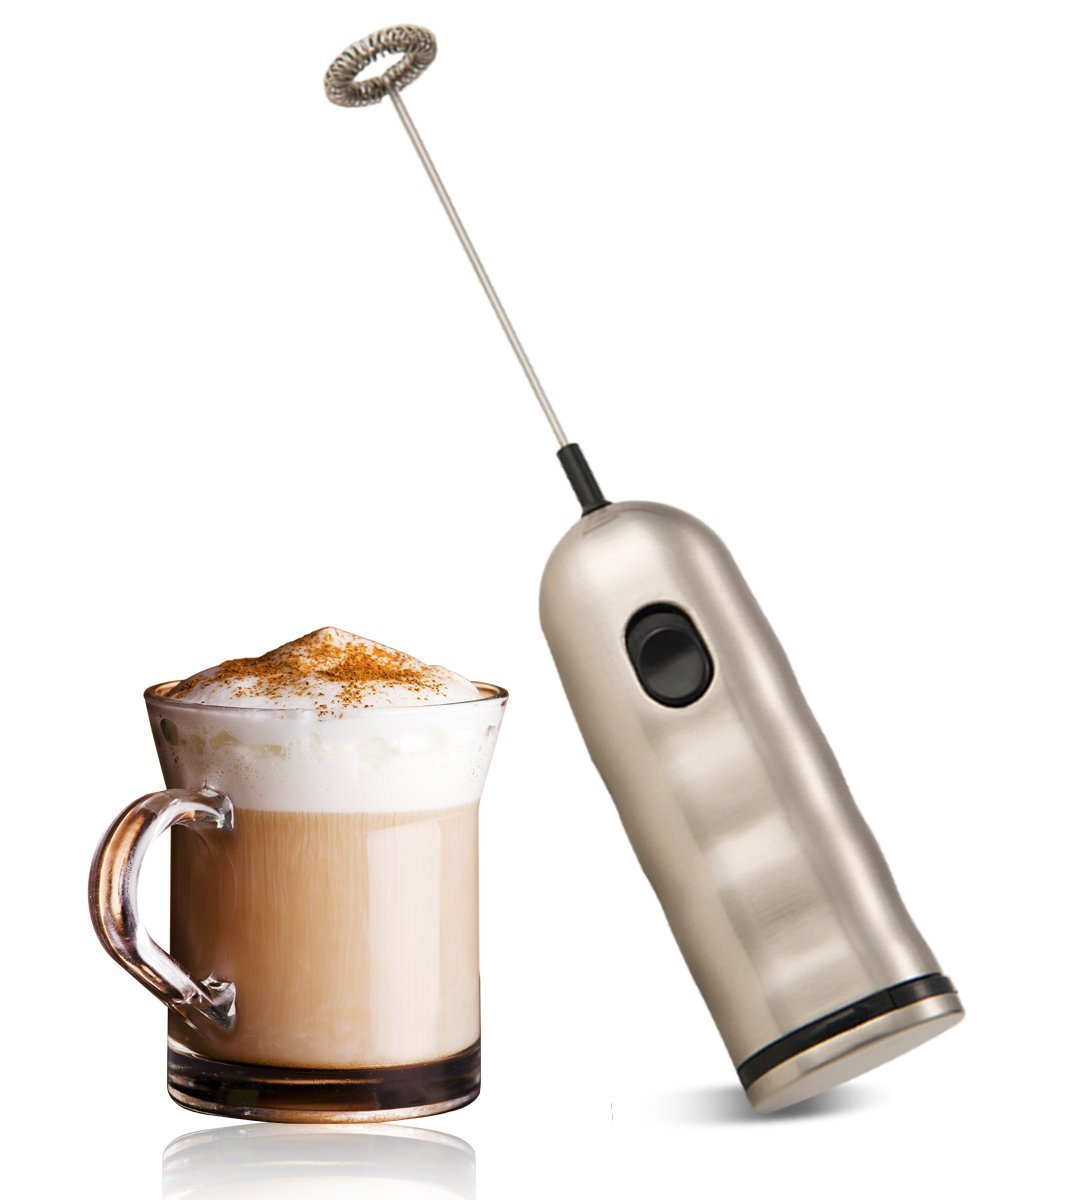 5 Best Handheld Milk Frothers Review